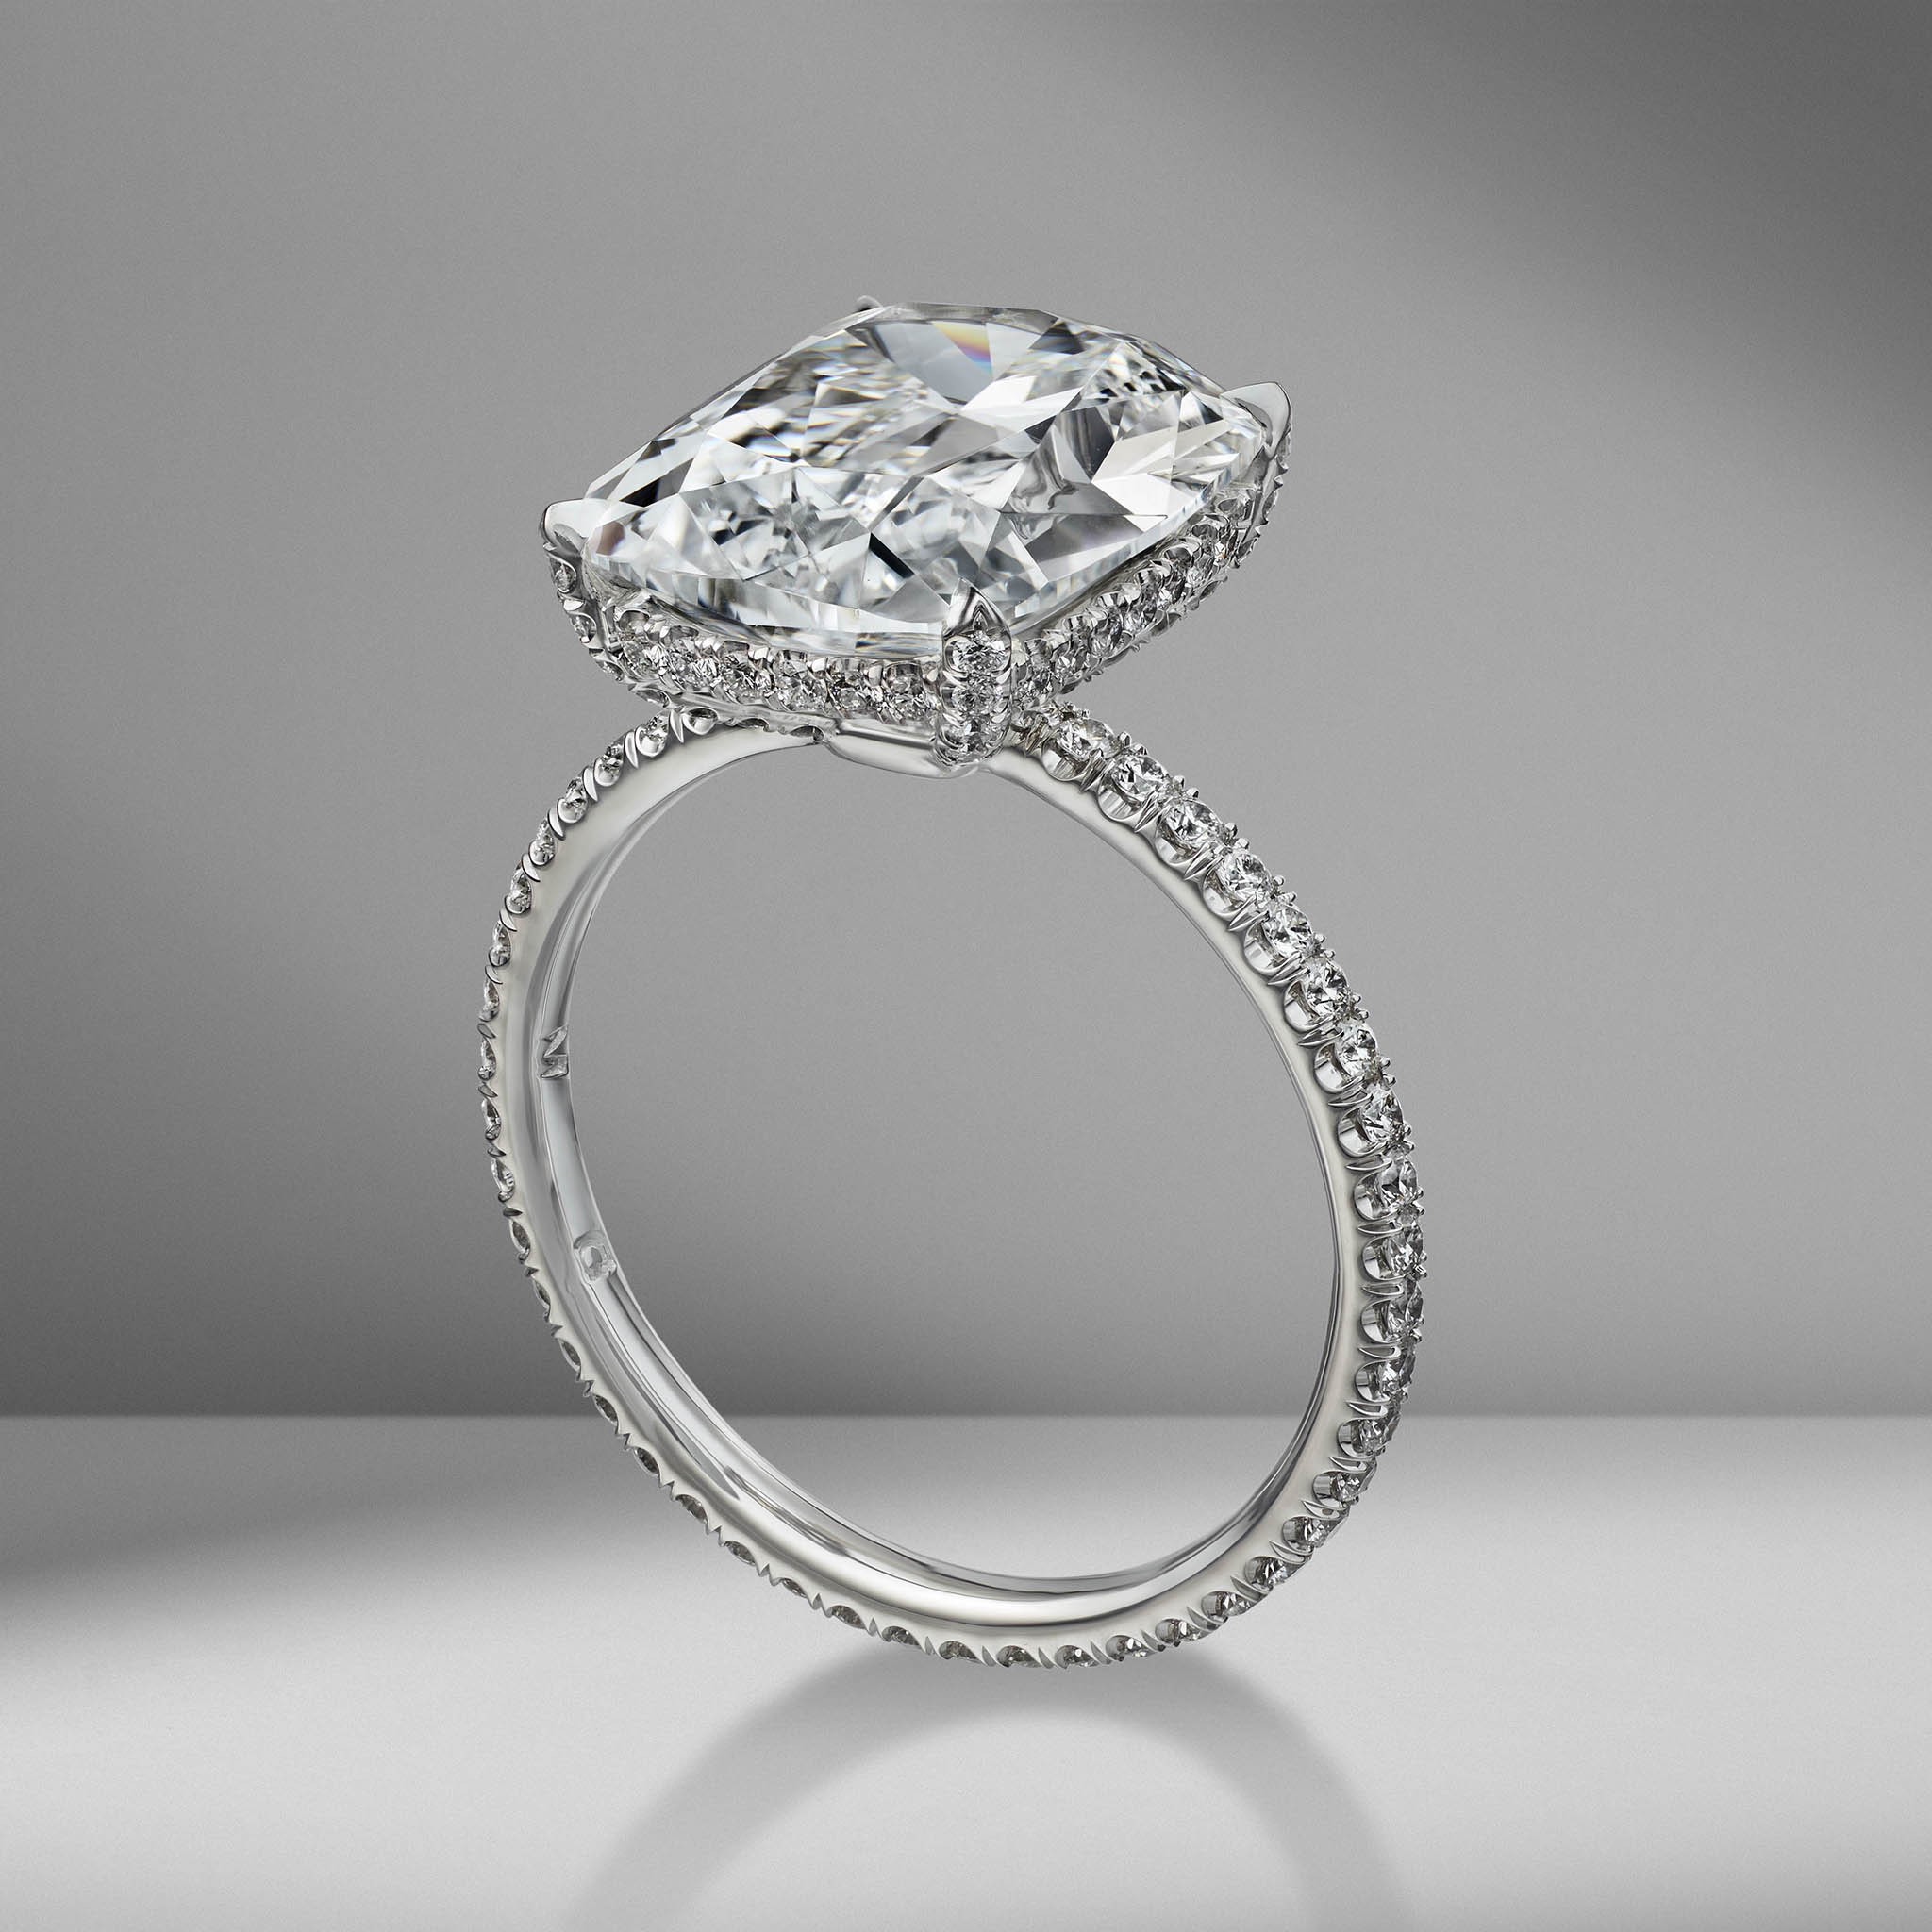 Antique Cushion Cut Engagement Ring with Diamond Pavé